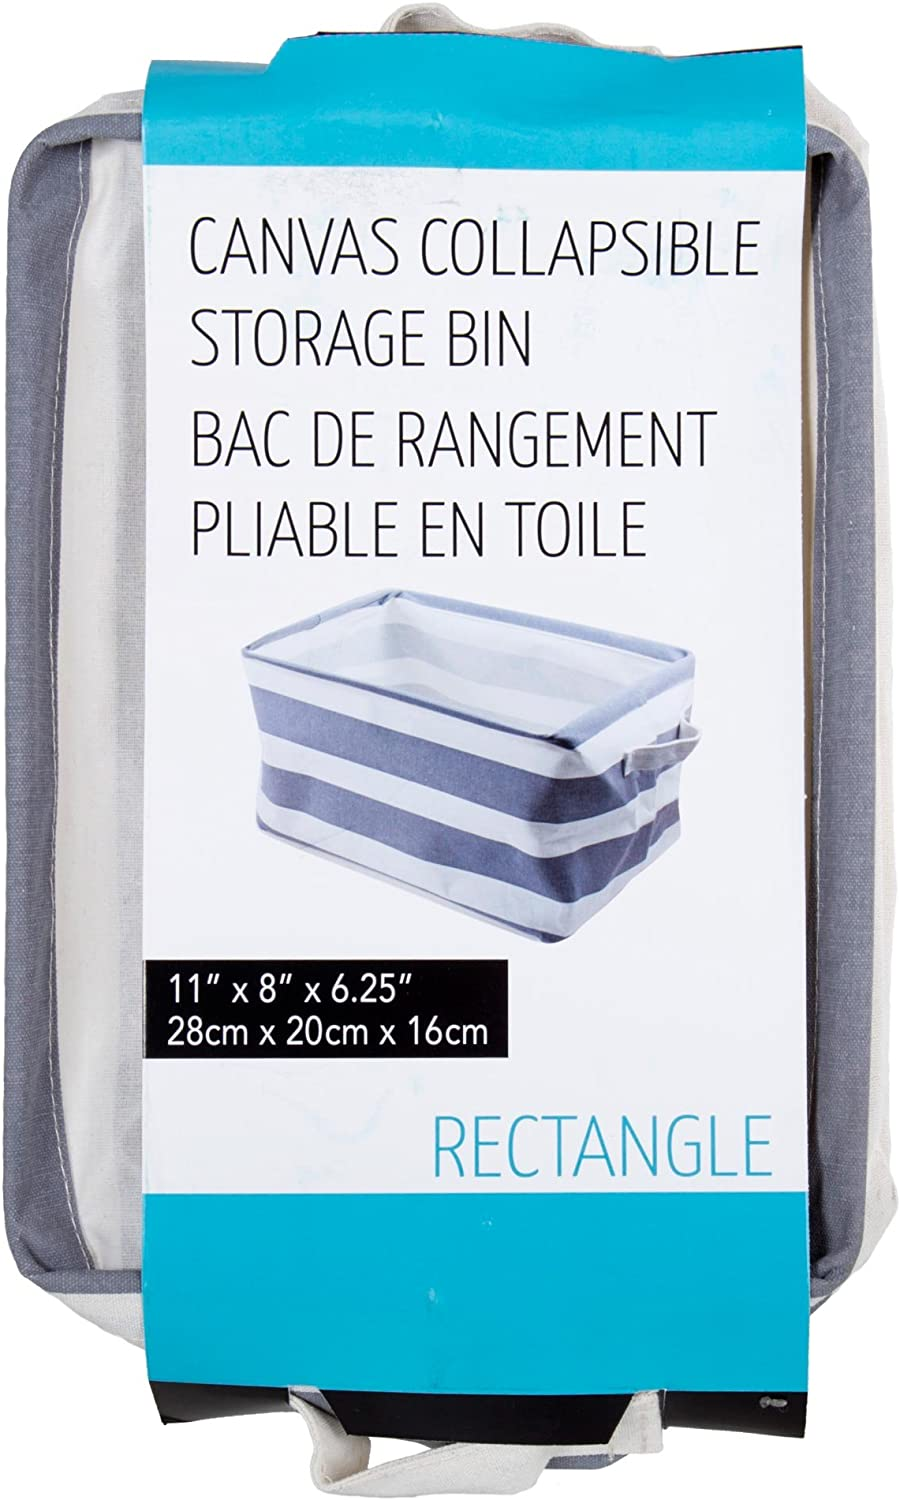 1 1 x 8 x 6.25 Blue Truu Design Canvas Collapsible Storage Bin